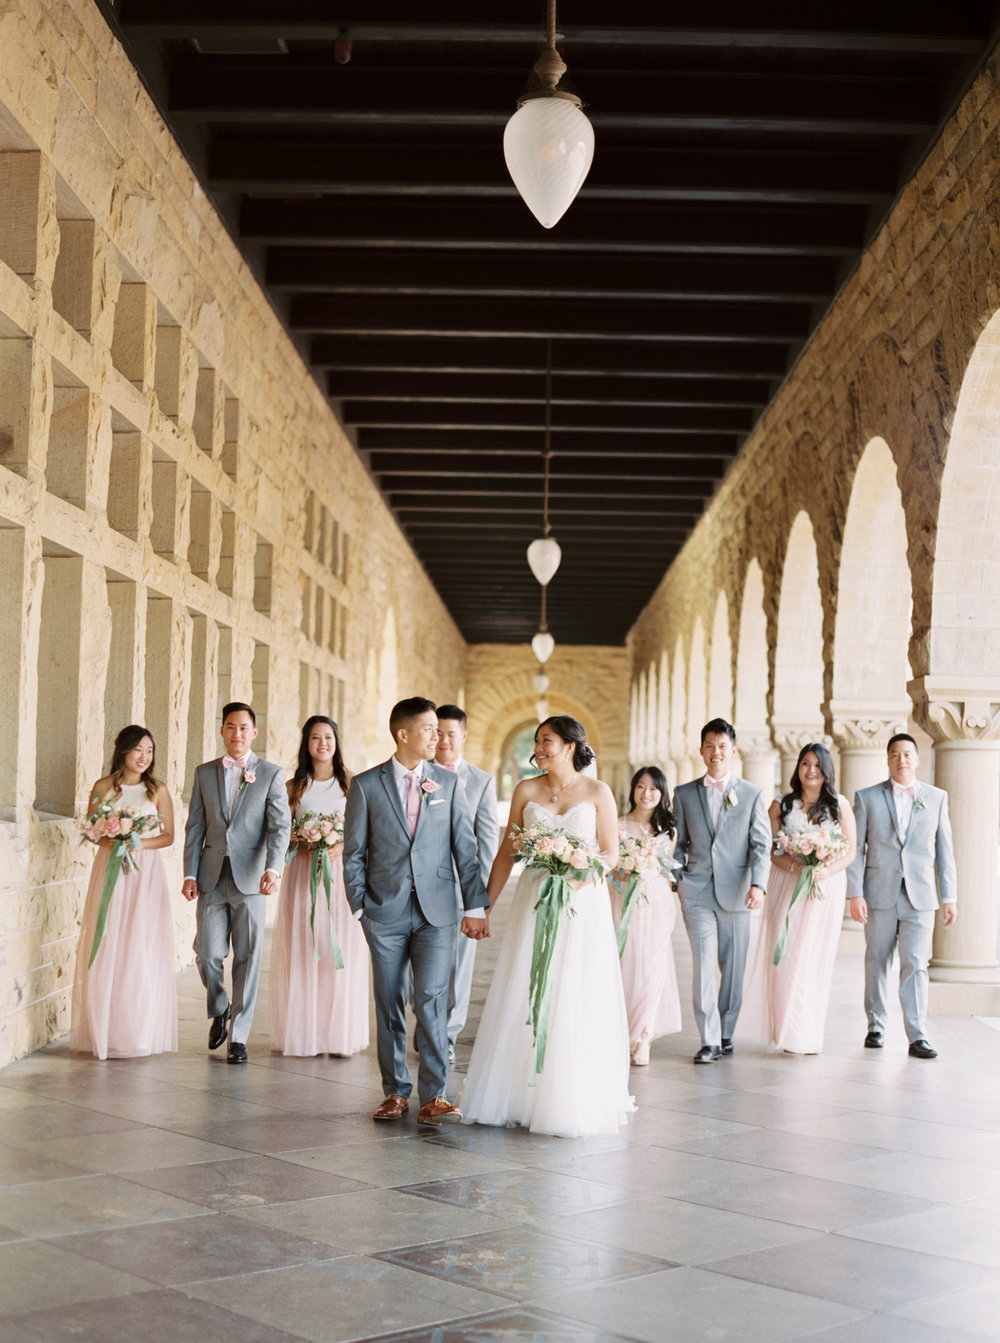 trynhphoto_wedding_photography_Standford_PaloAlto_SF_BayArea_Destination_OC_HA-10.jpg